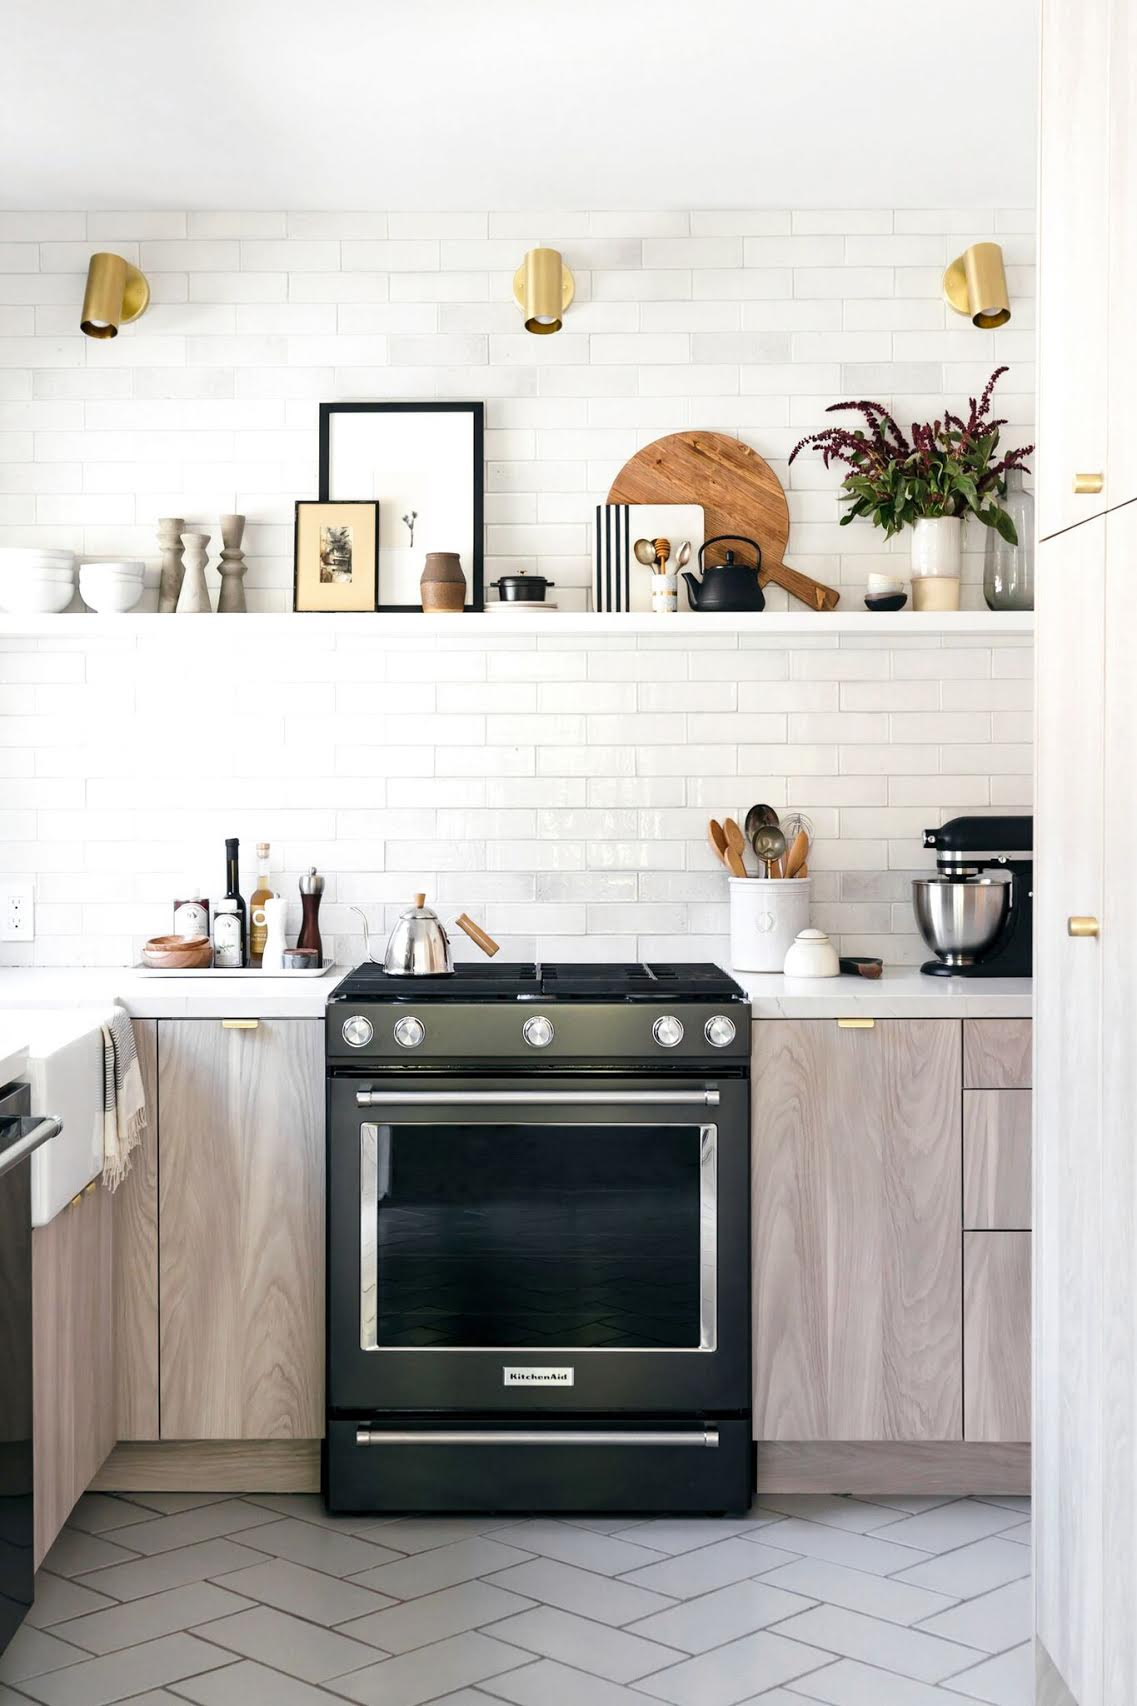 Manly Tips Designing A Small Kitchen Studio Mcgee Interior Design Small Kitchen Ideas kitchen Interior Design Small Kitchens